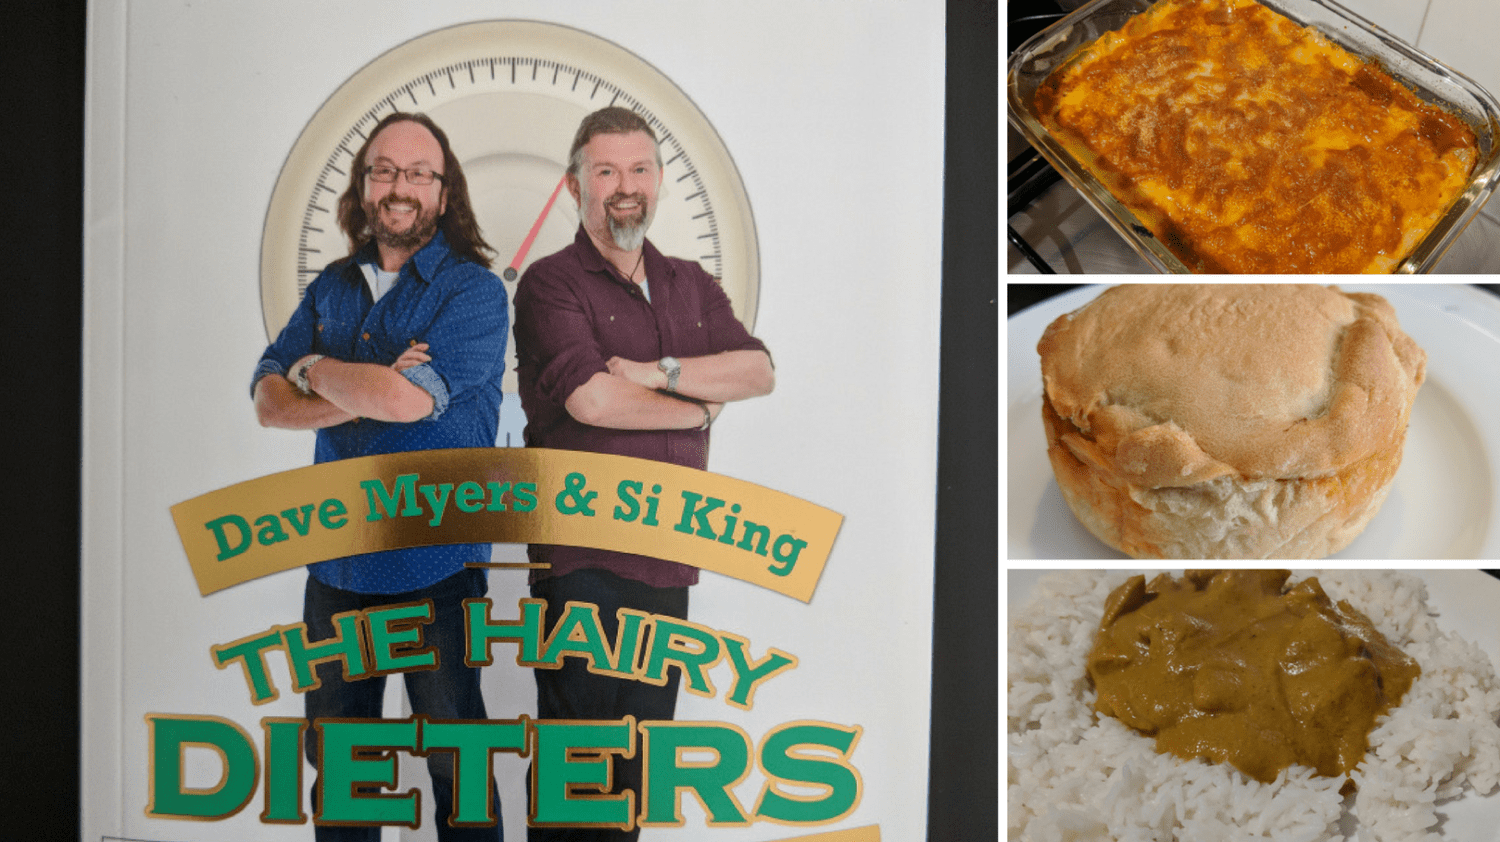 Hairy BIkers - Diet Book - Feature Image